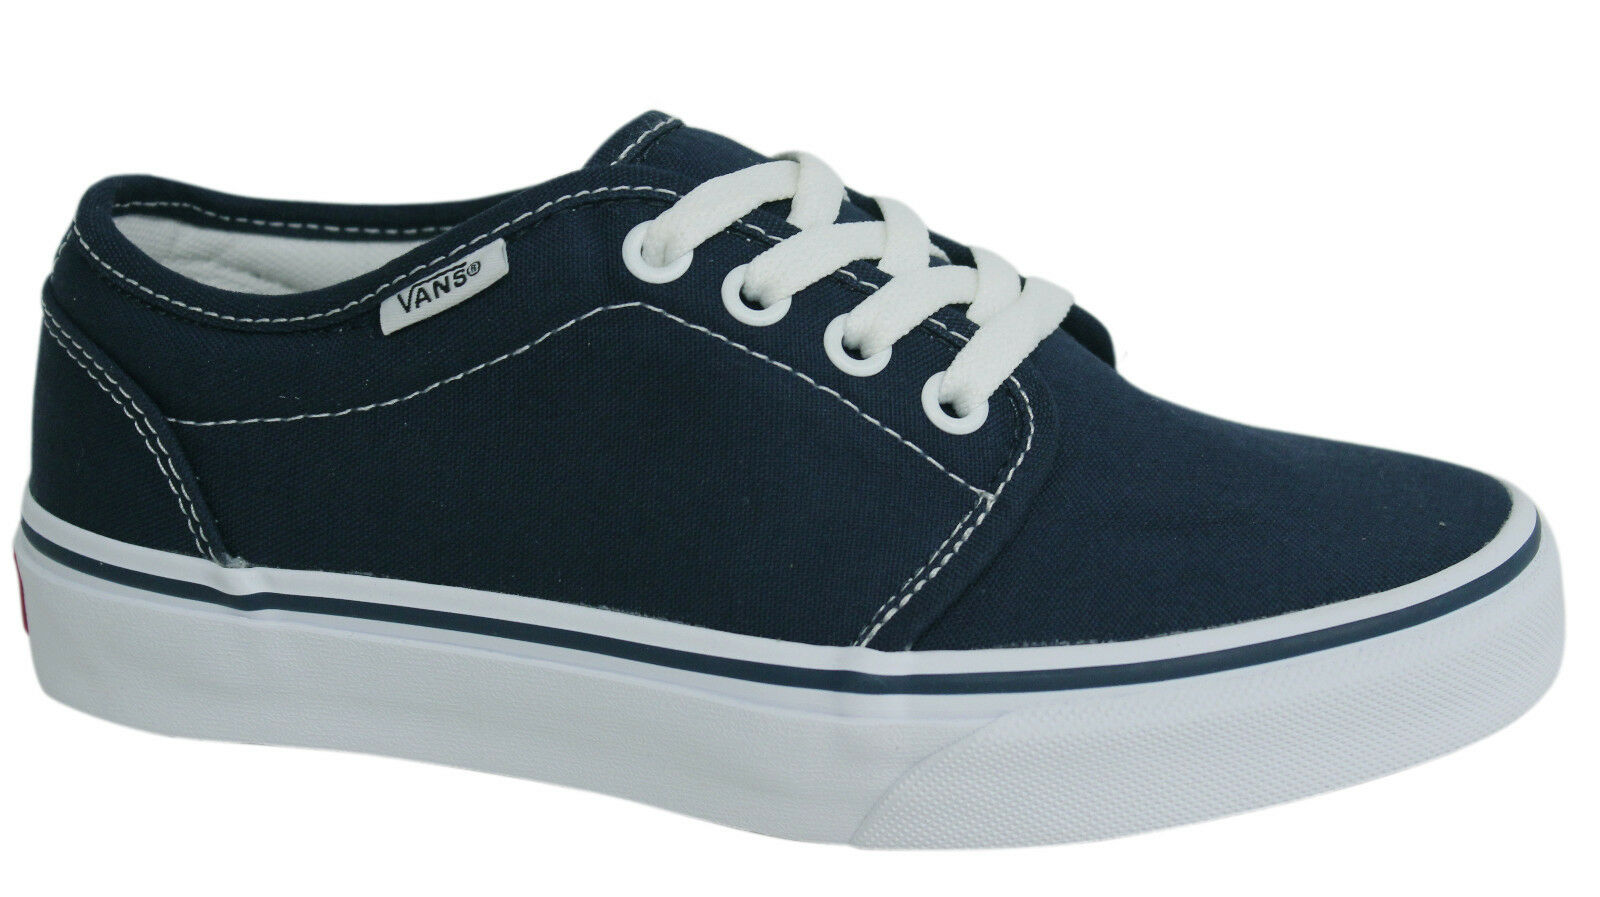 Vans Vulcanized Off The Wall 106 Vulcanized Vans Lace Up Unisex Canvas Plimsolls 99ZNVY D69 afd699